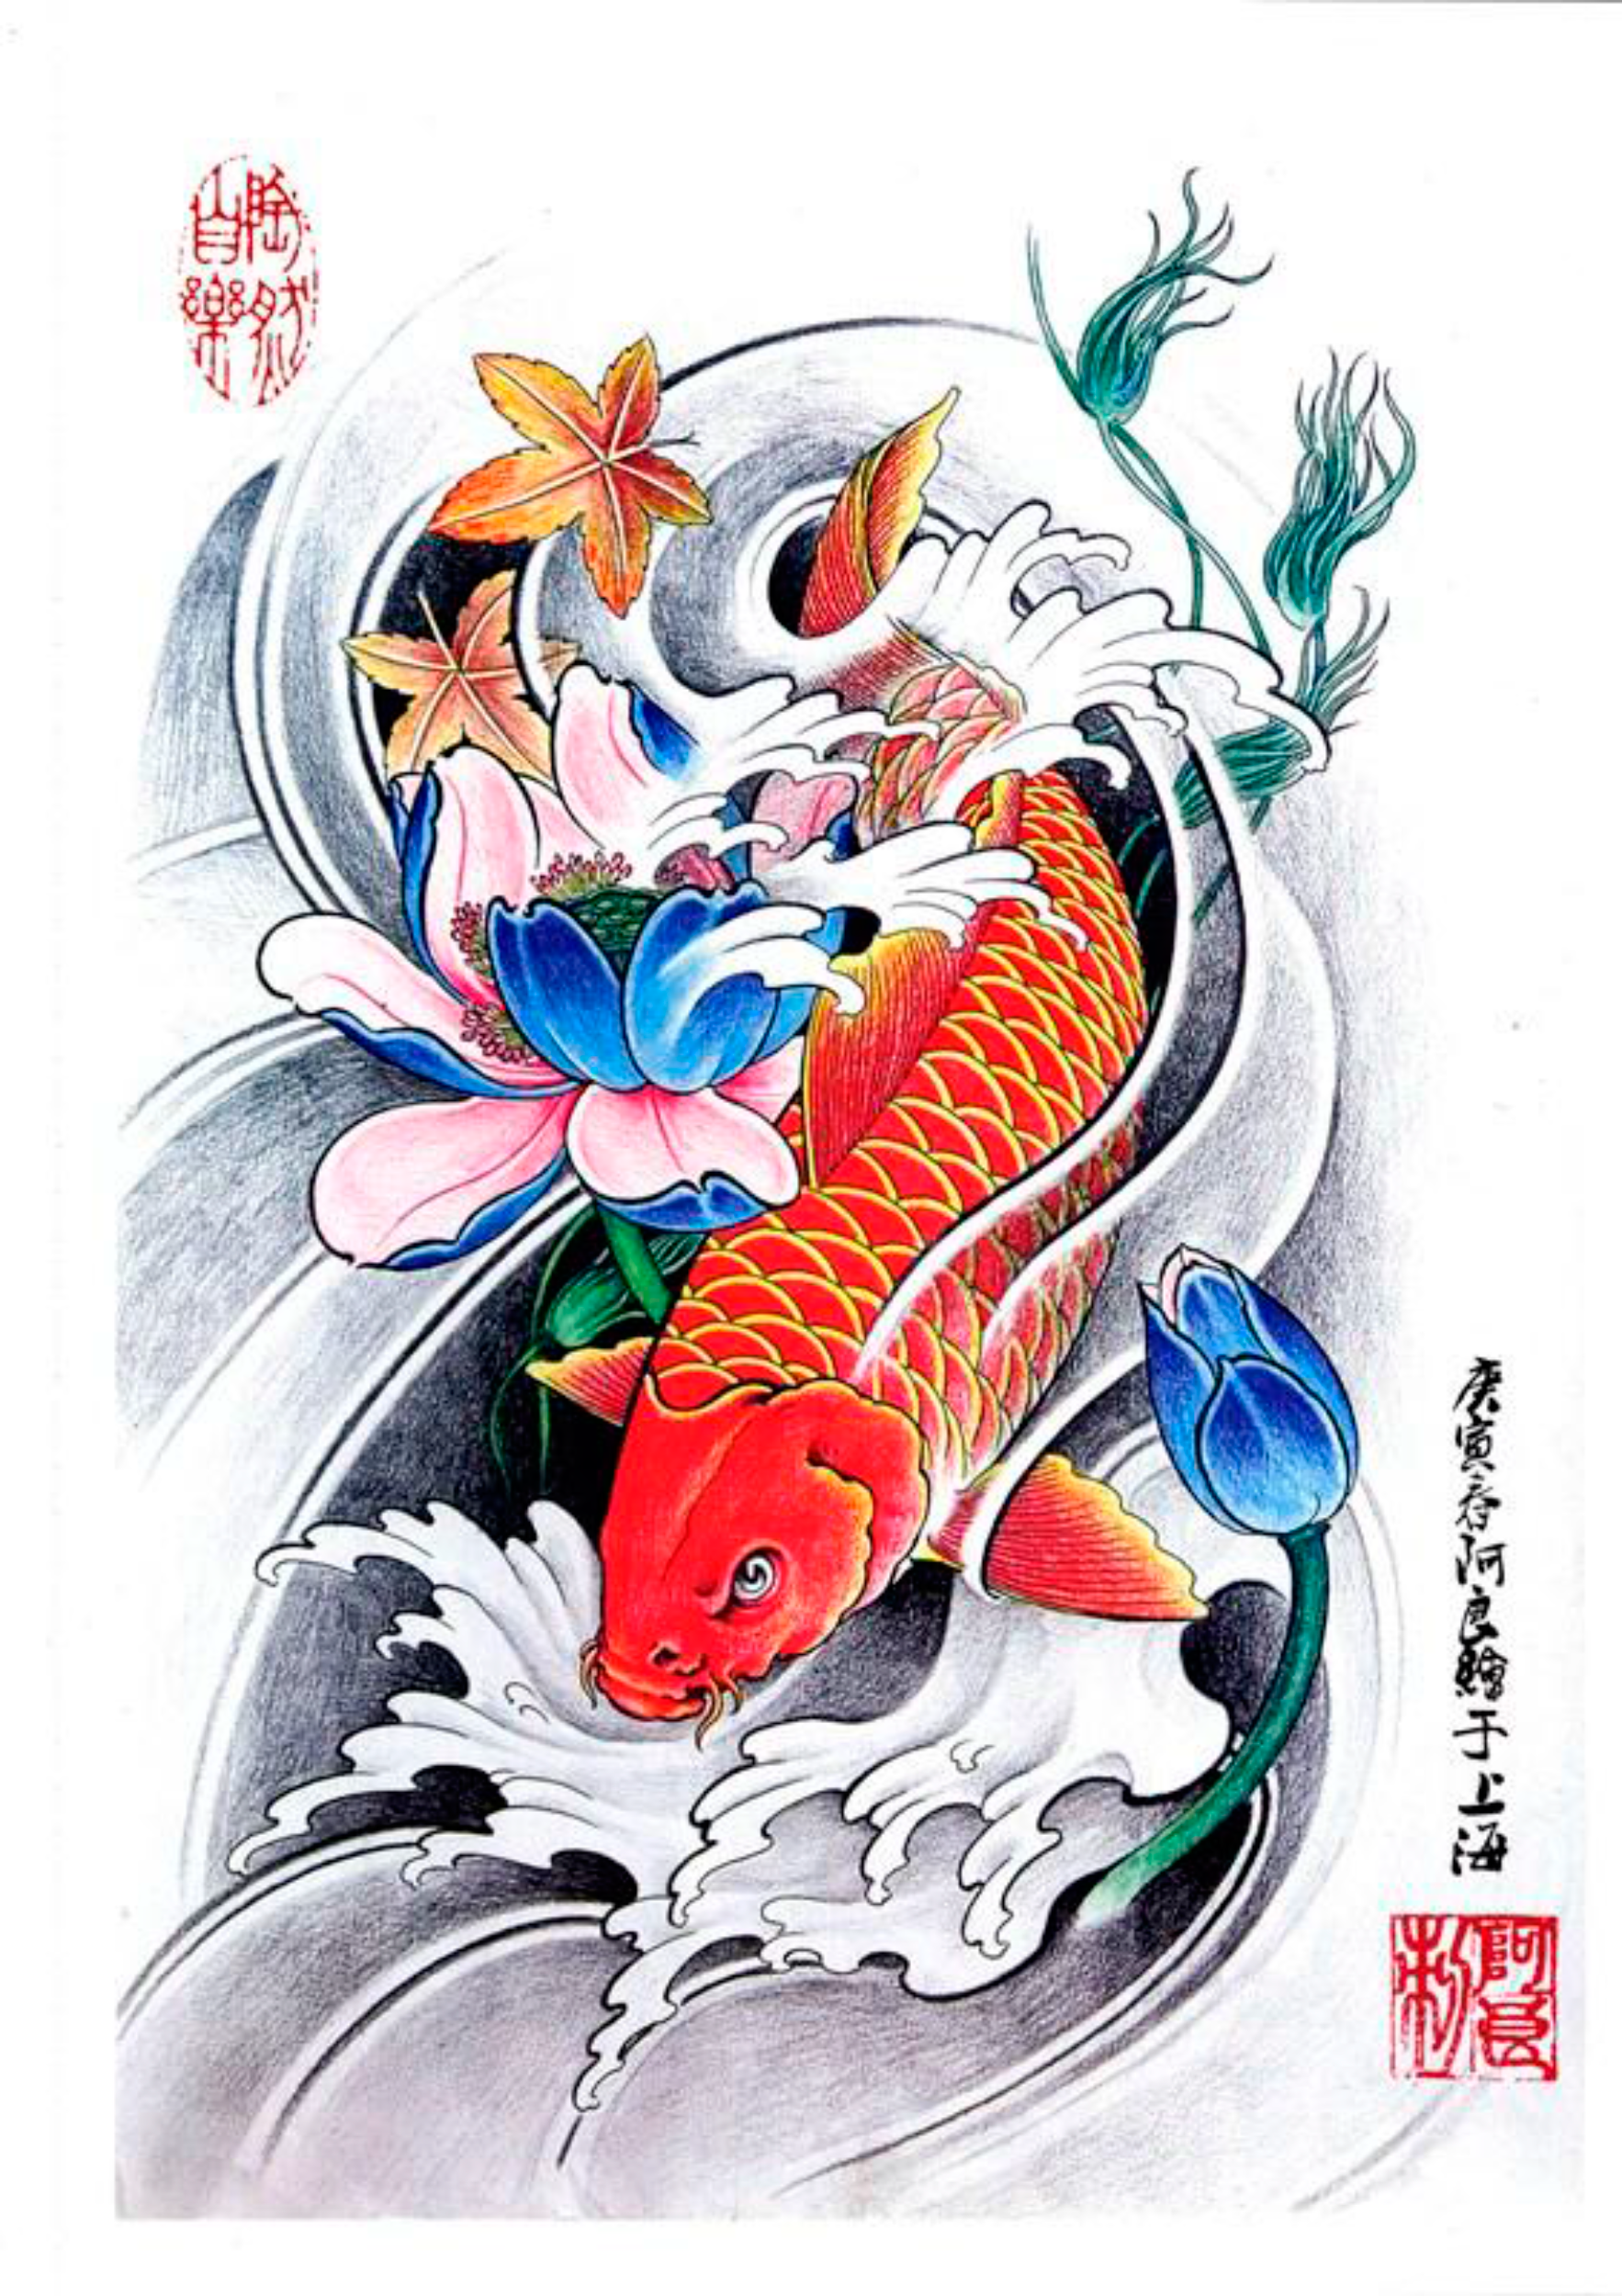 Koi fish tattoos | Tattoos/Piercings | Pinterest | Koi fish tattoo ...